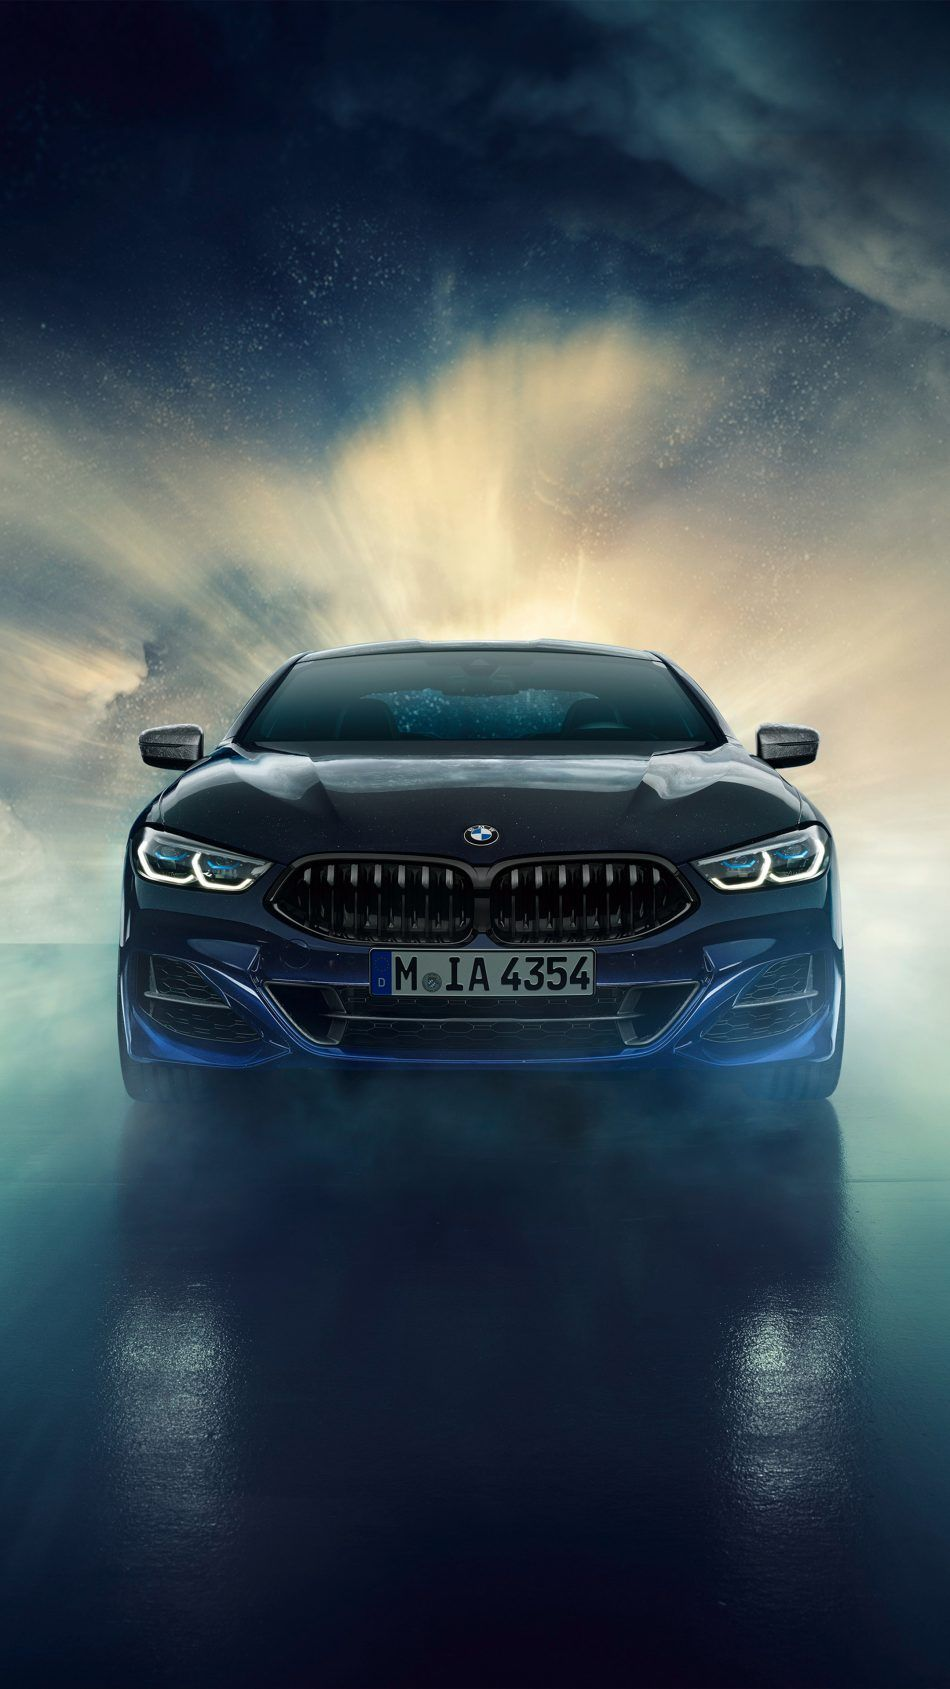 Bmw Wallpaper 4k : wallpaper, Individual, M850i, Xdrive, Night, Ultra, Mobile, Wallpaper, Wallpapers,, World